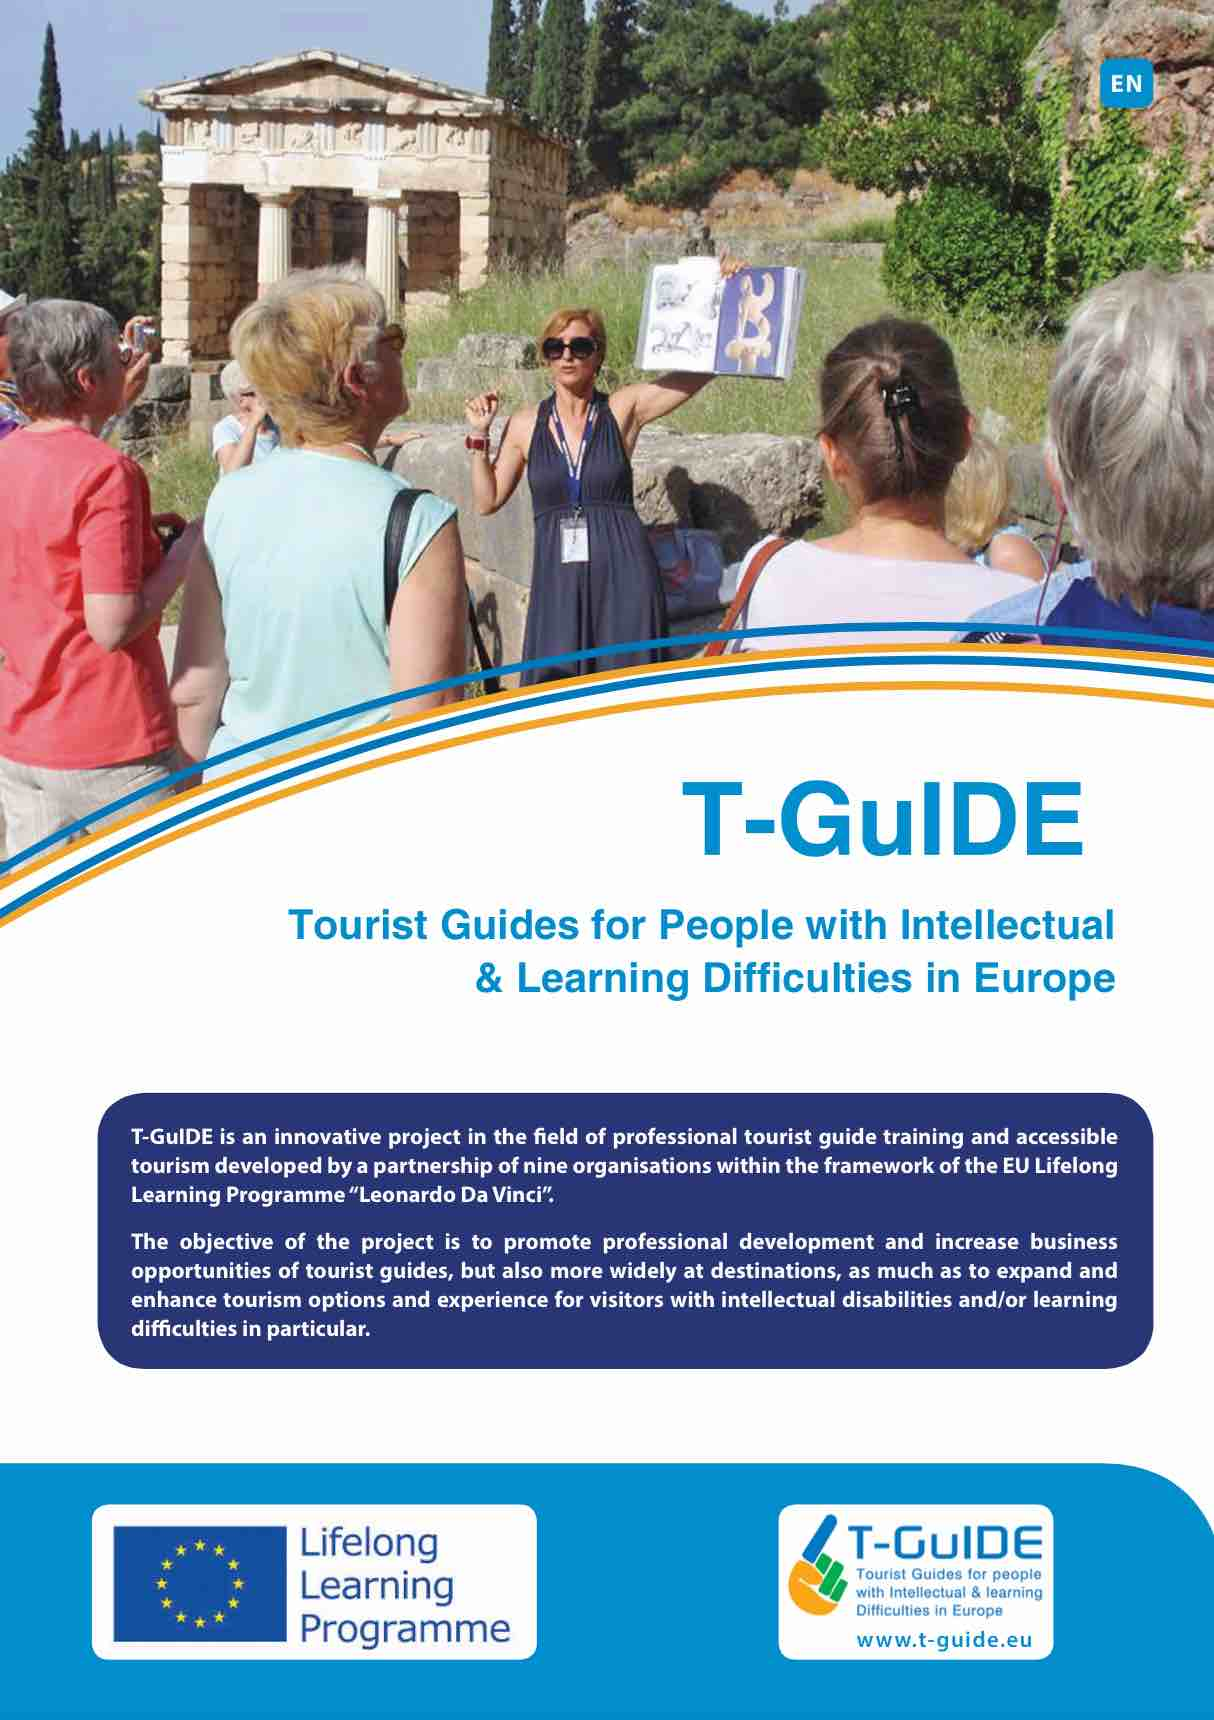 T-GuIDE booklet cover image